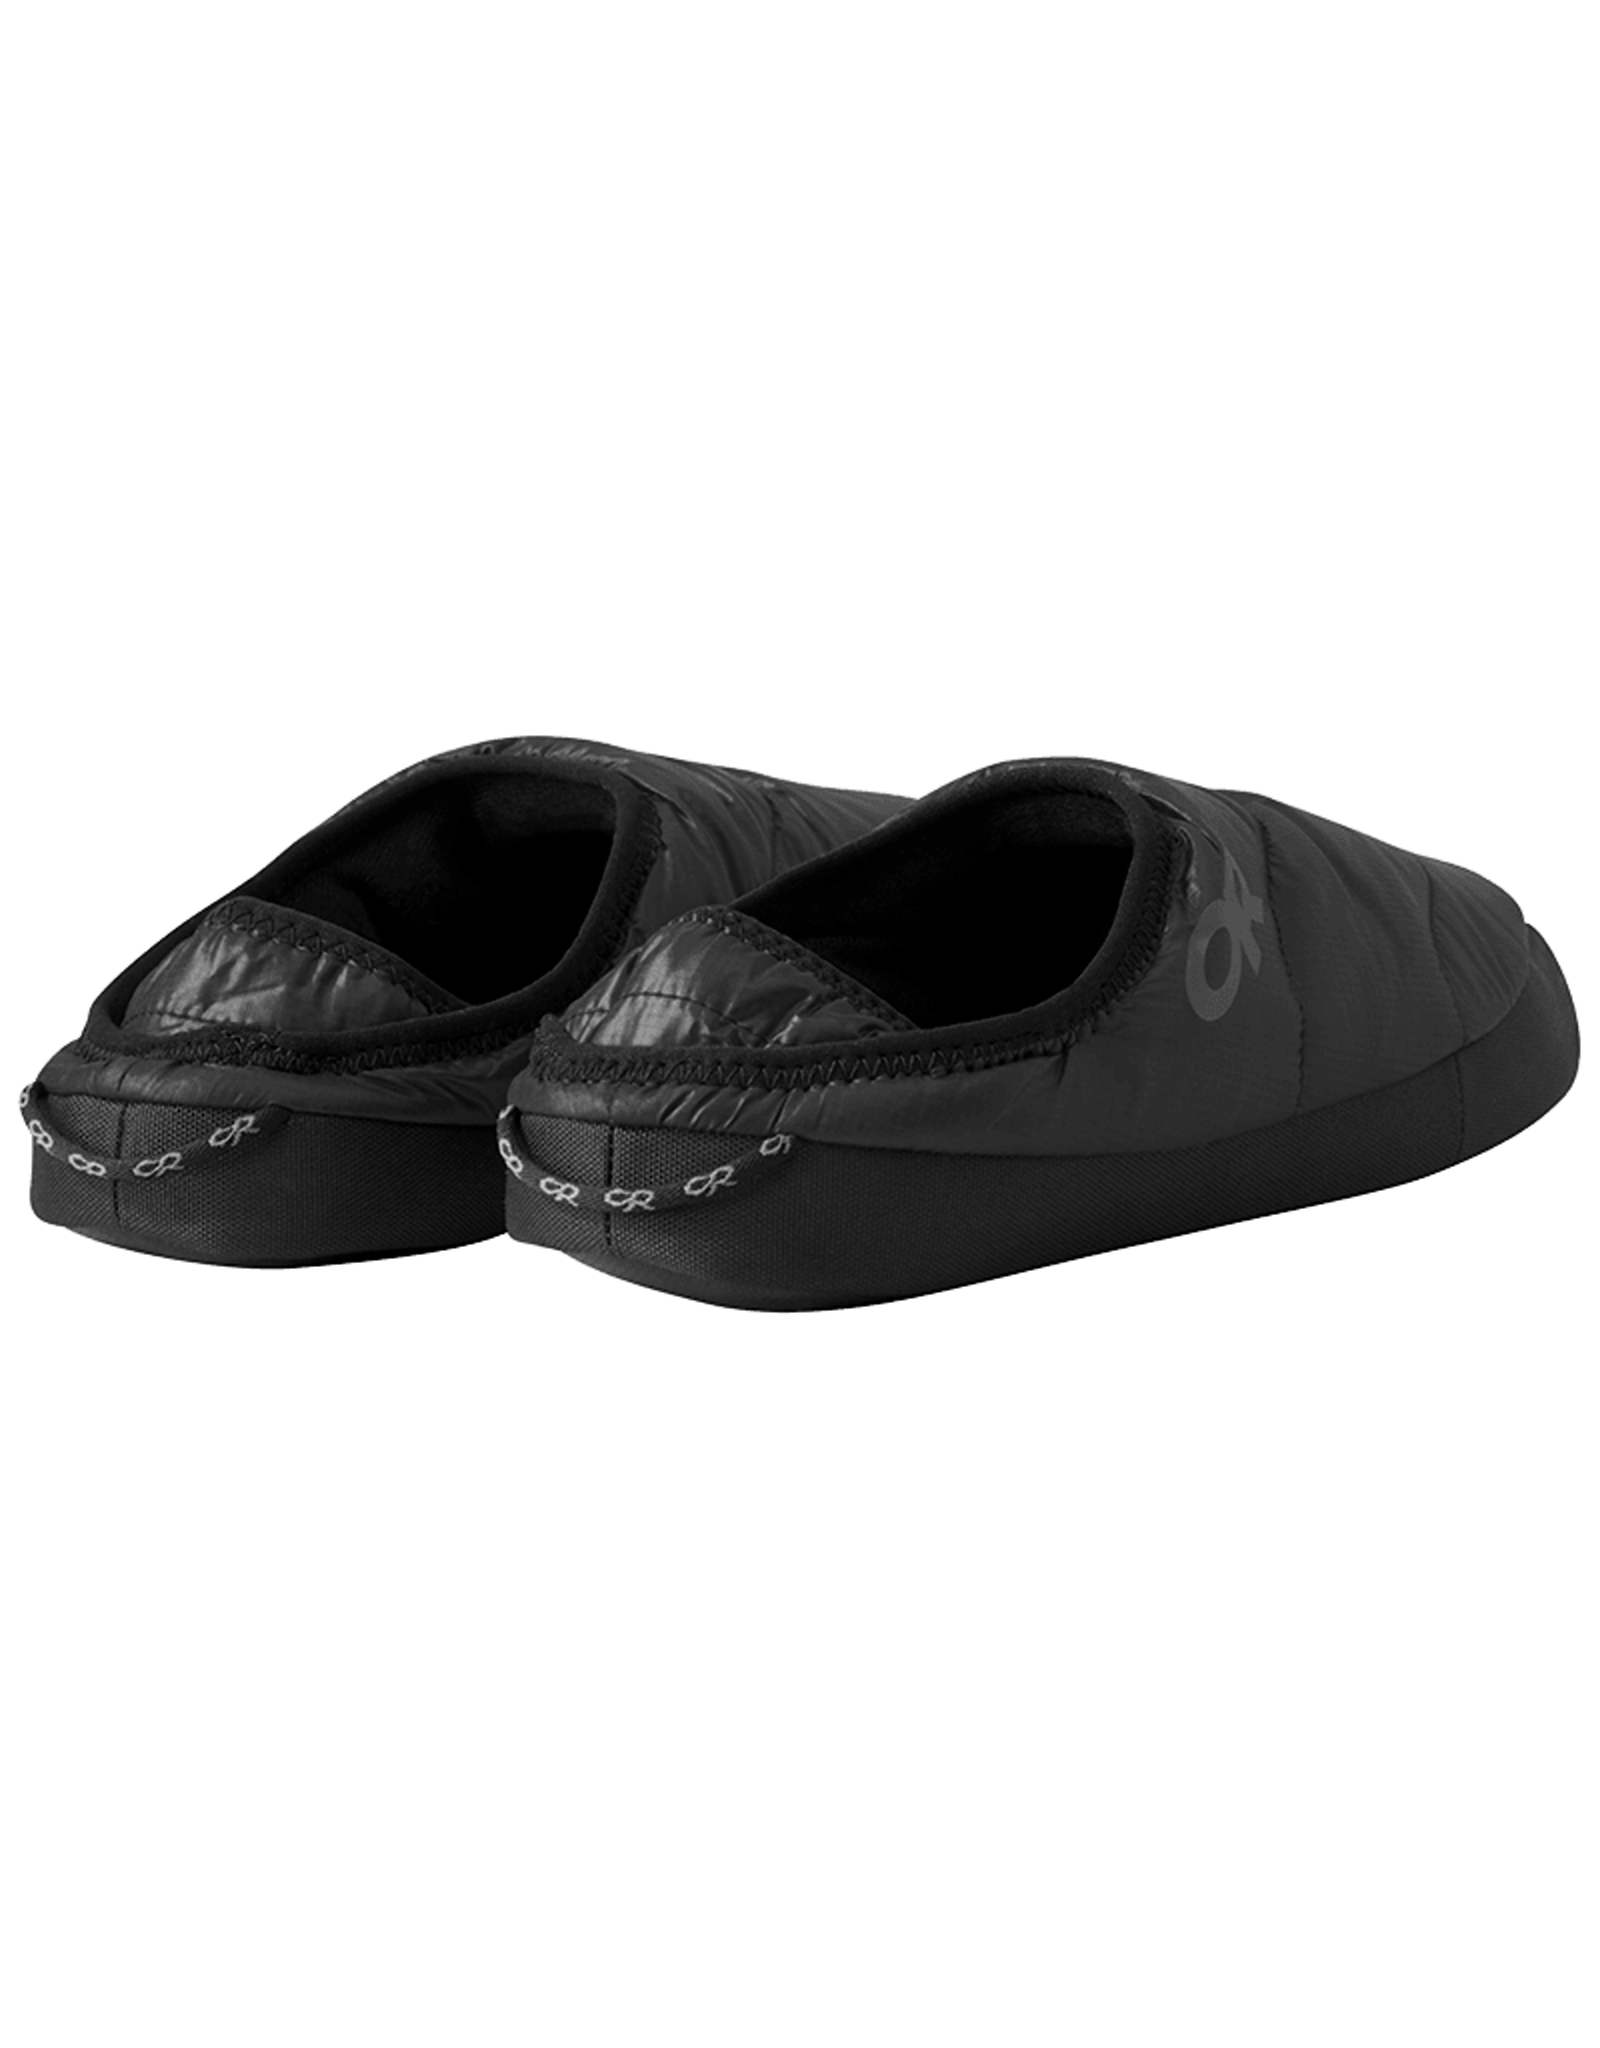 Outdoor Research Outdoor Research M's Tundra Slip-On Aerogel Booties